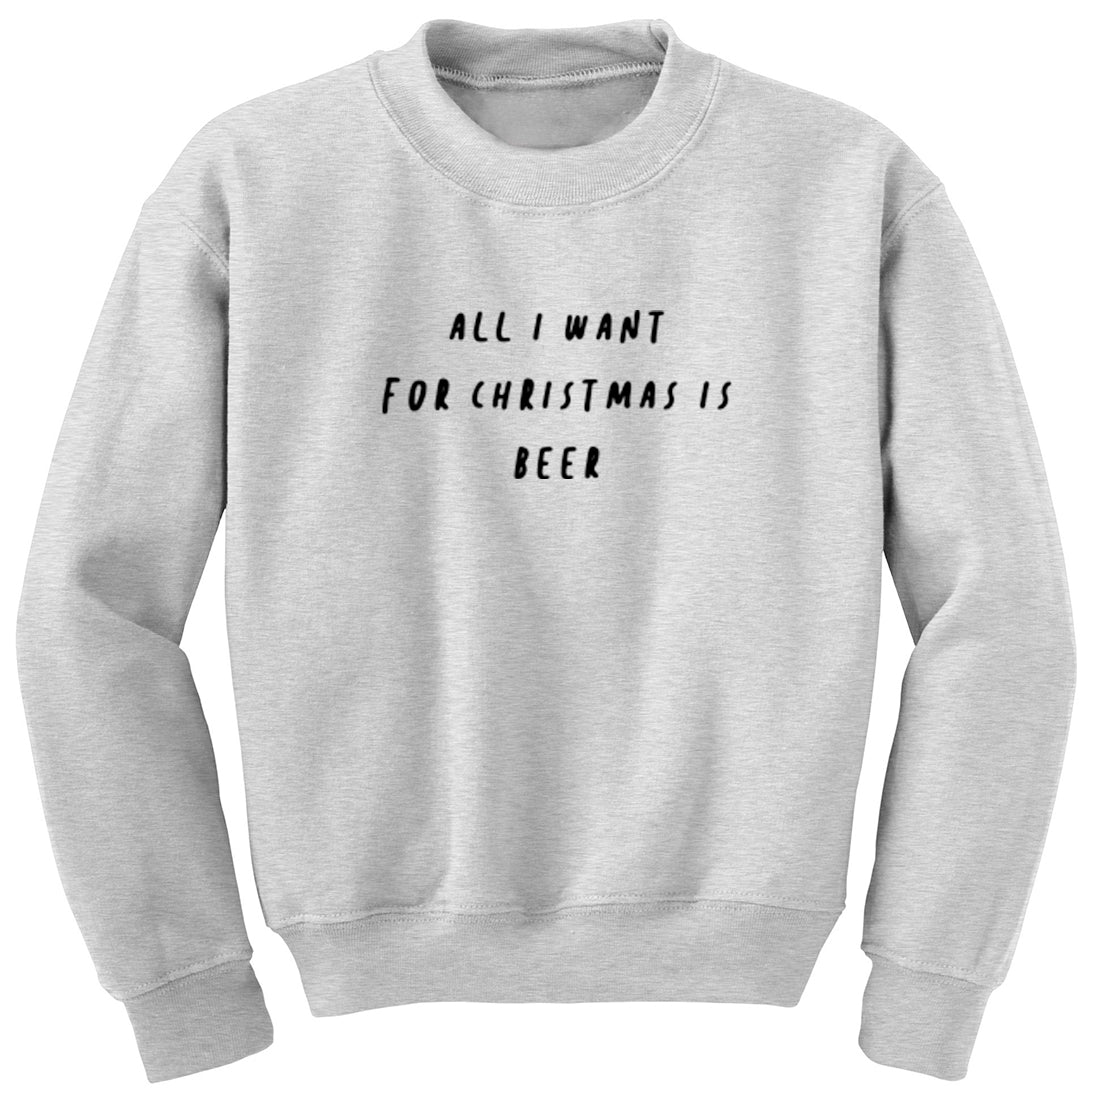 All I Want For Christmas Is Beer Unisex Jumper K2474 - Illustrated Identity Ltd.